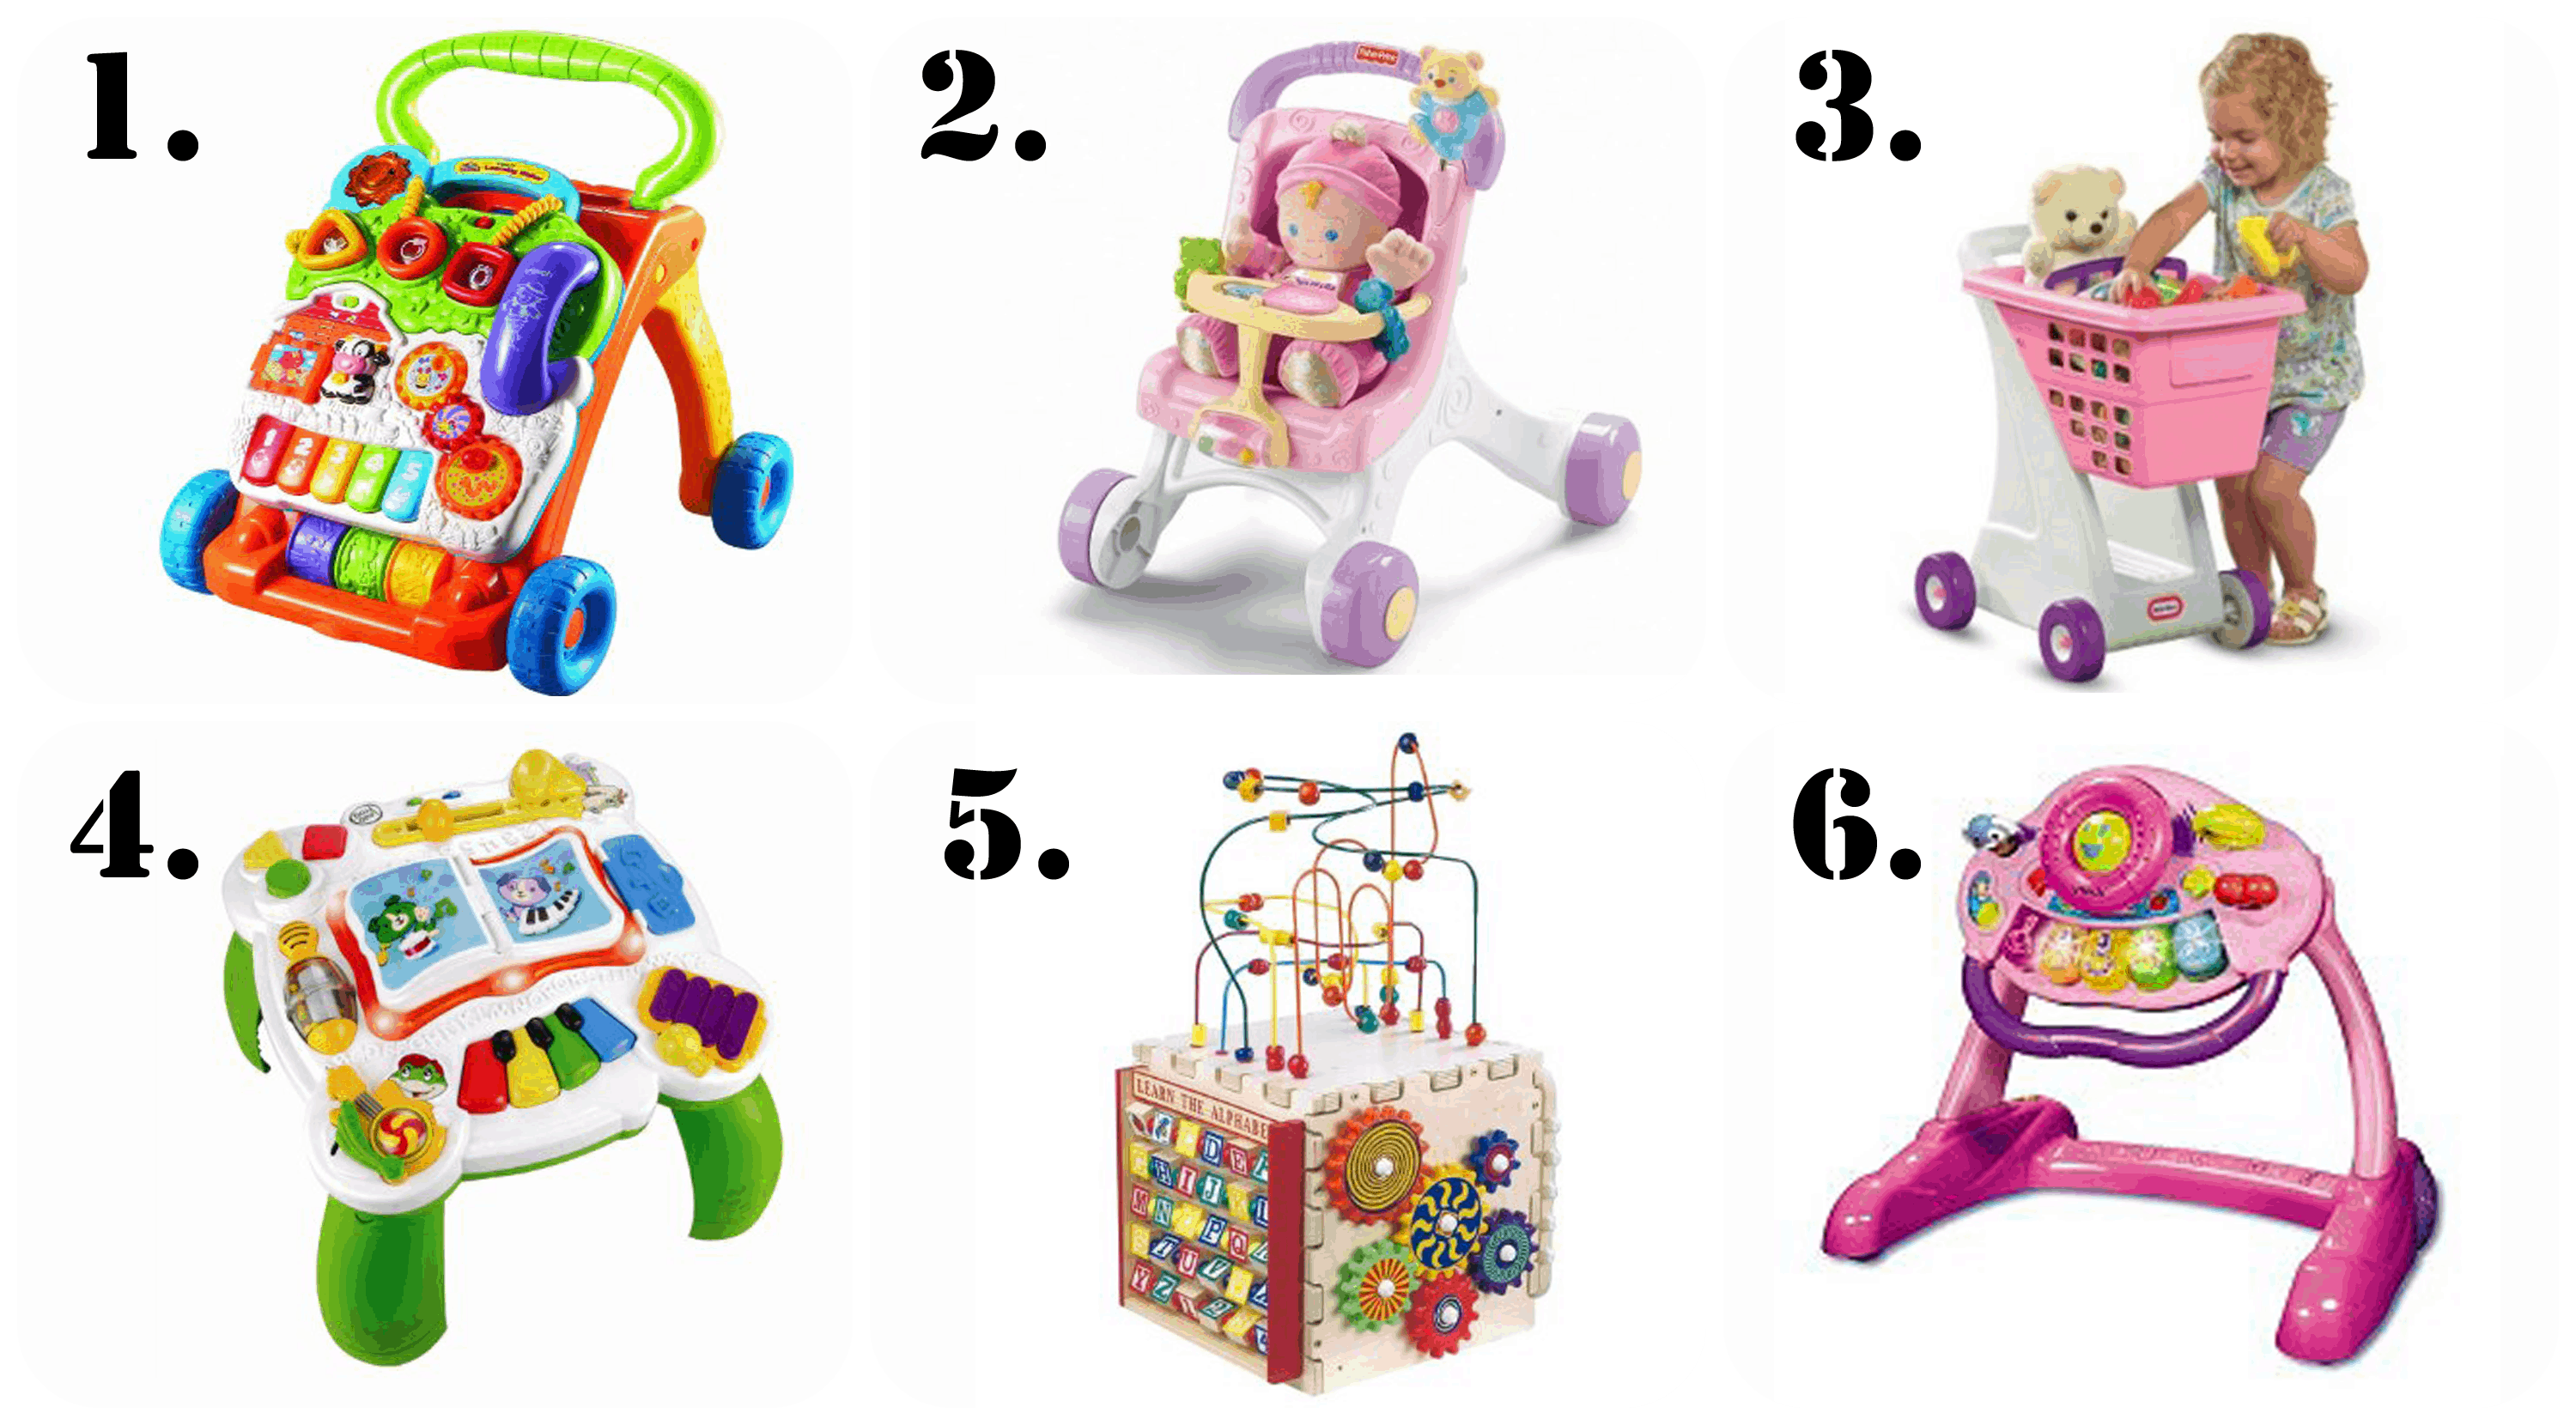 best presents and gift ideas for a 1 year old- Walker and standing toys